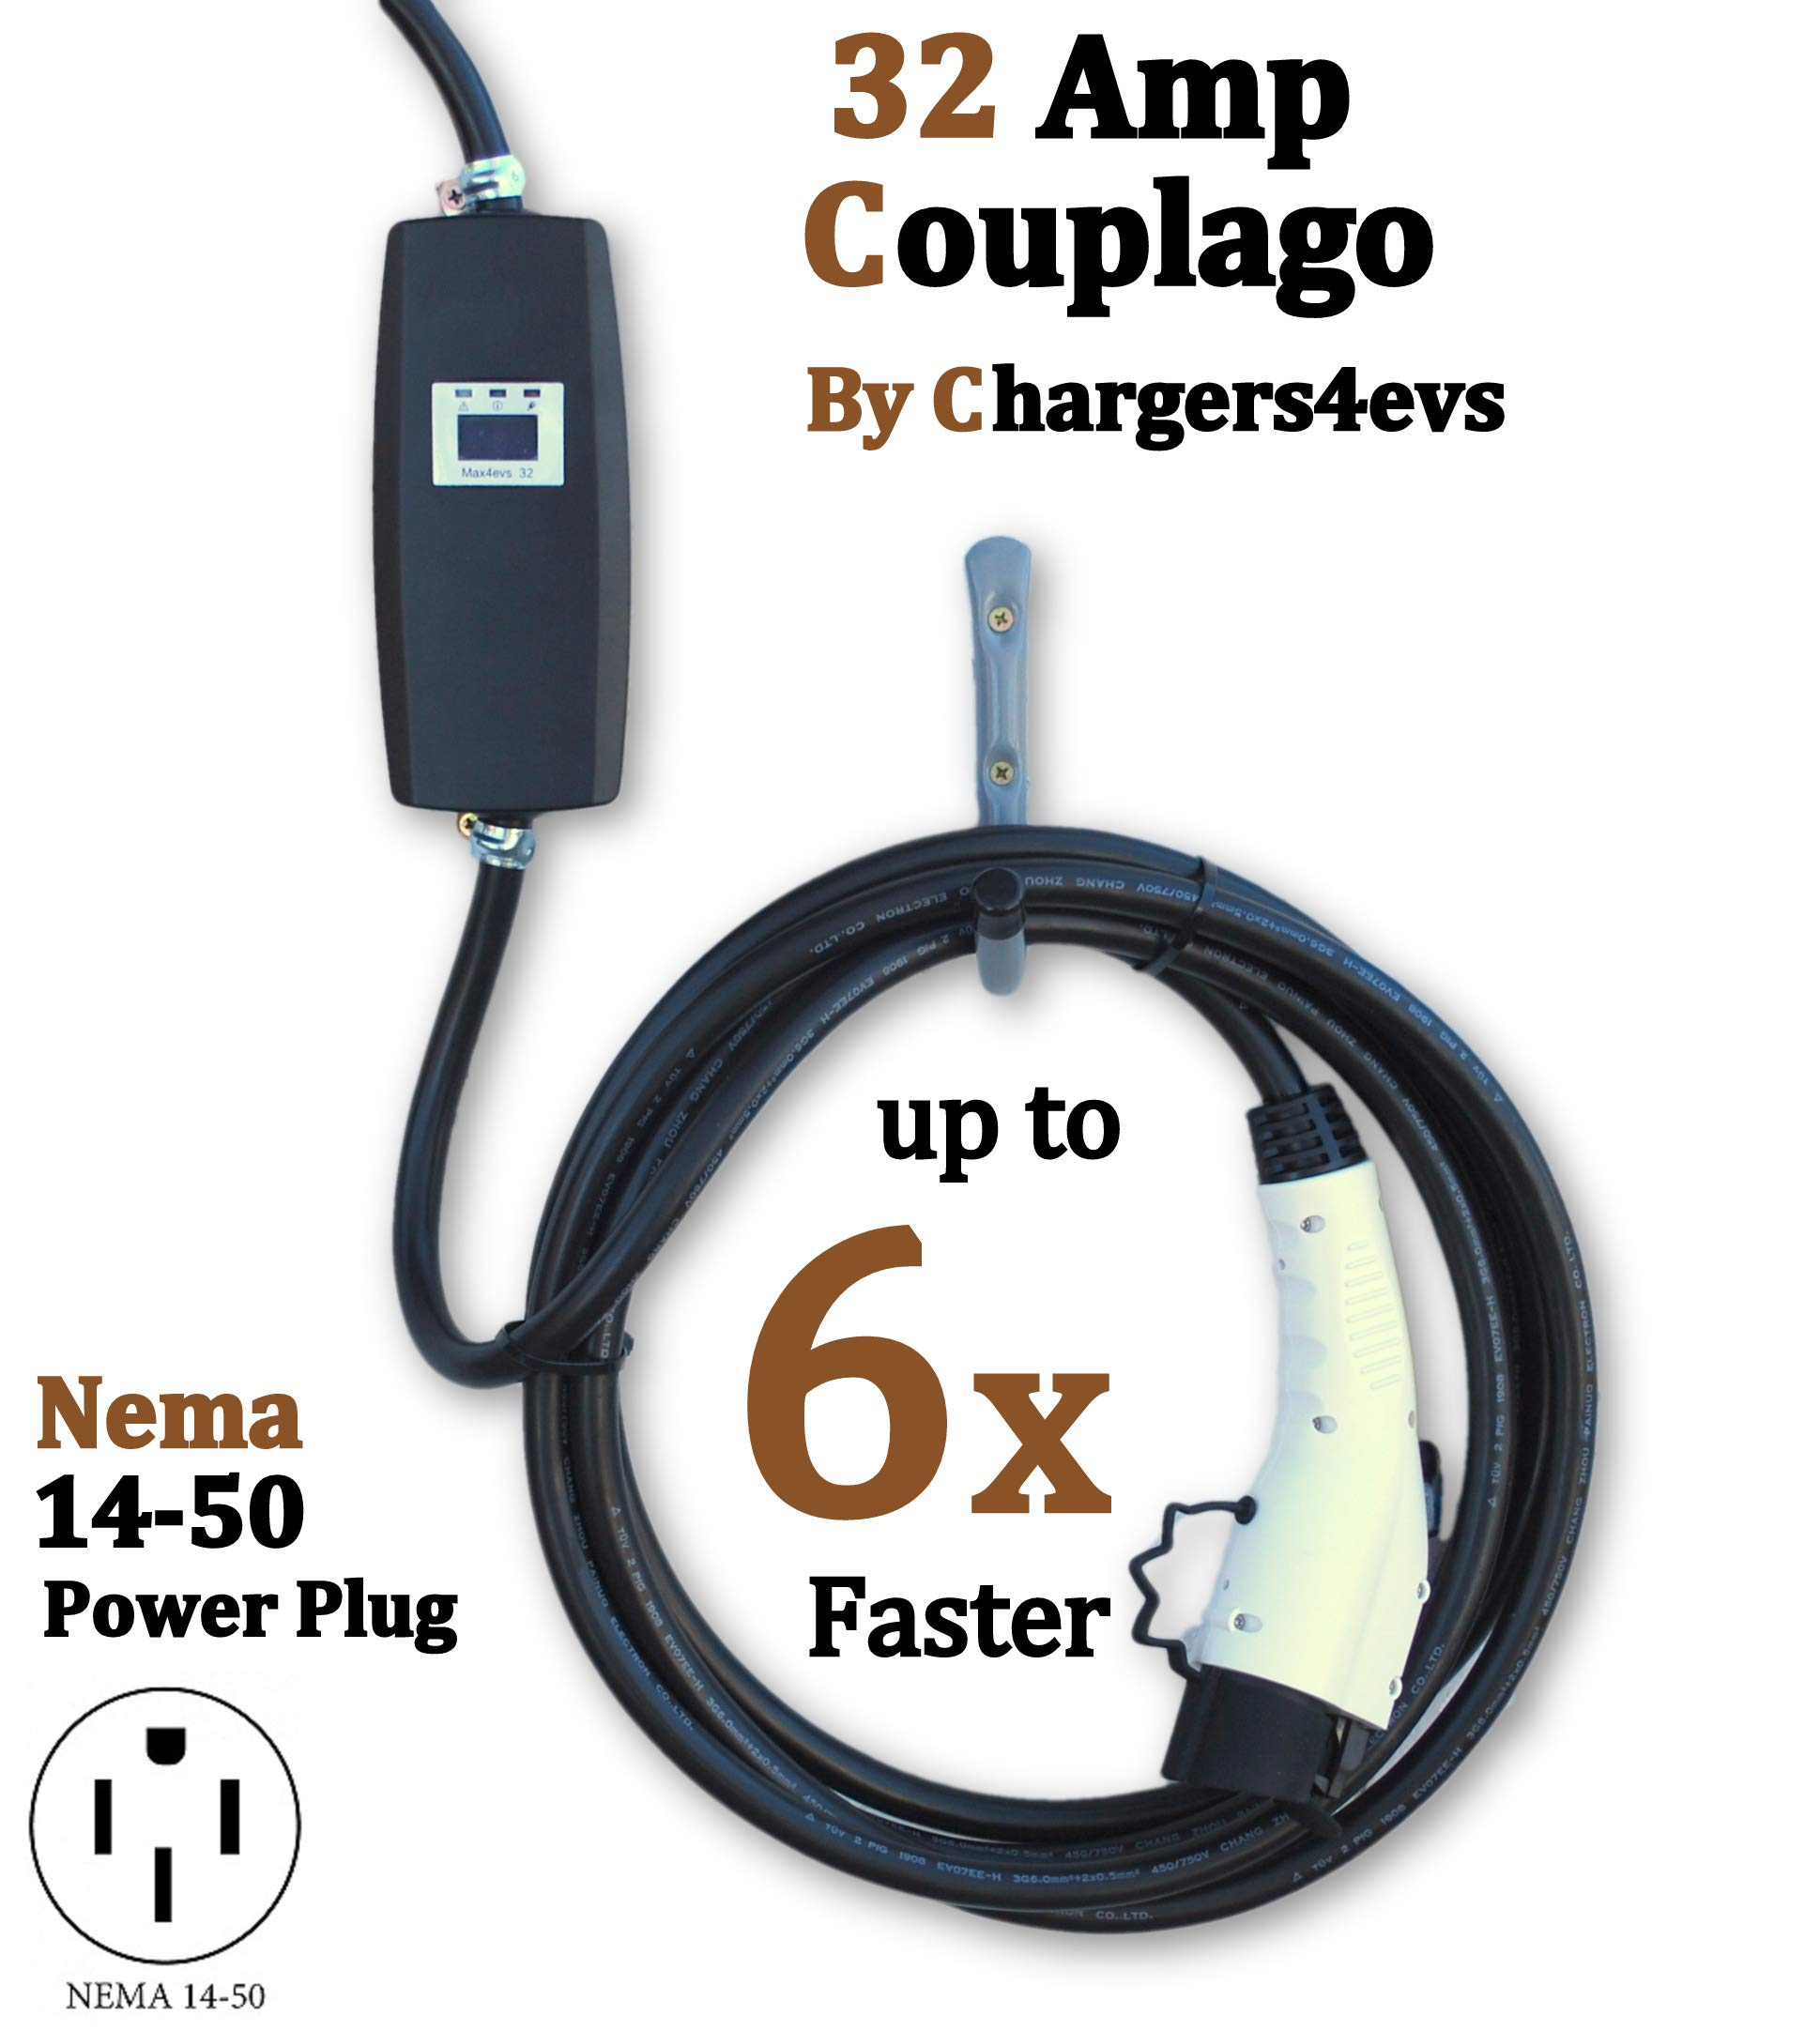 Couplago Max4evs, 32 AMP (7.68 KW) 240V Heavy Duty Charging Station, Level 2- EVSE- Charger for Electric Vehicles, 3 in 1 Charger,You Set The AMPS- 32 AMP, 16 AMP or 10 AMP - NEMA 14-50 Plug by Couplago